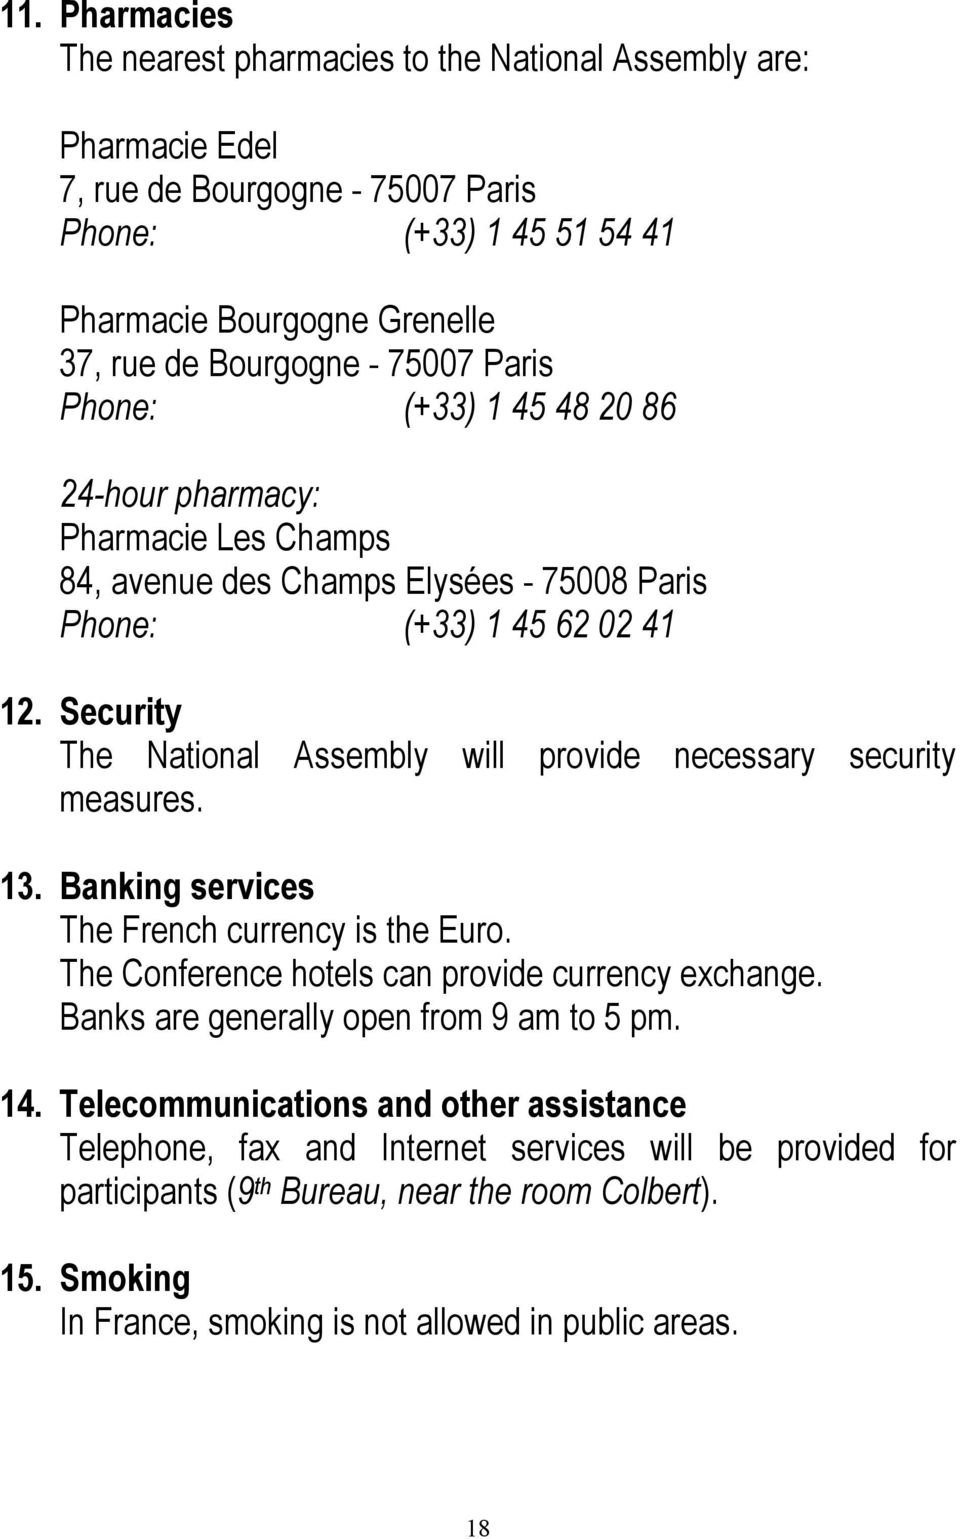 Security The National Assembly will provide necessary security measures. 13. Banking services The French currency is the Euro. The Conference hotels can provide currency exchange.